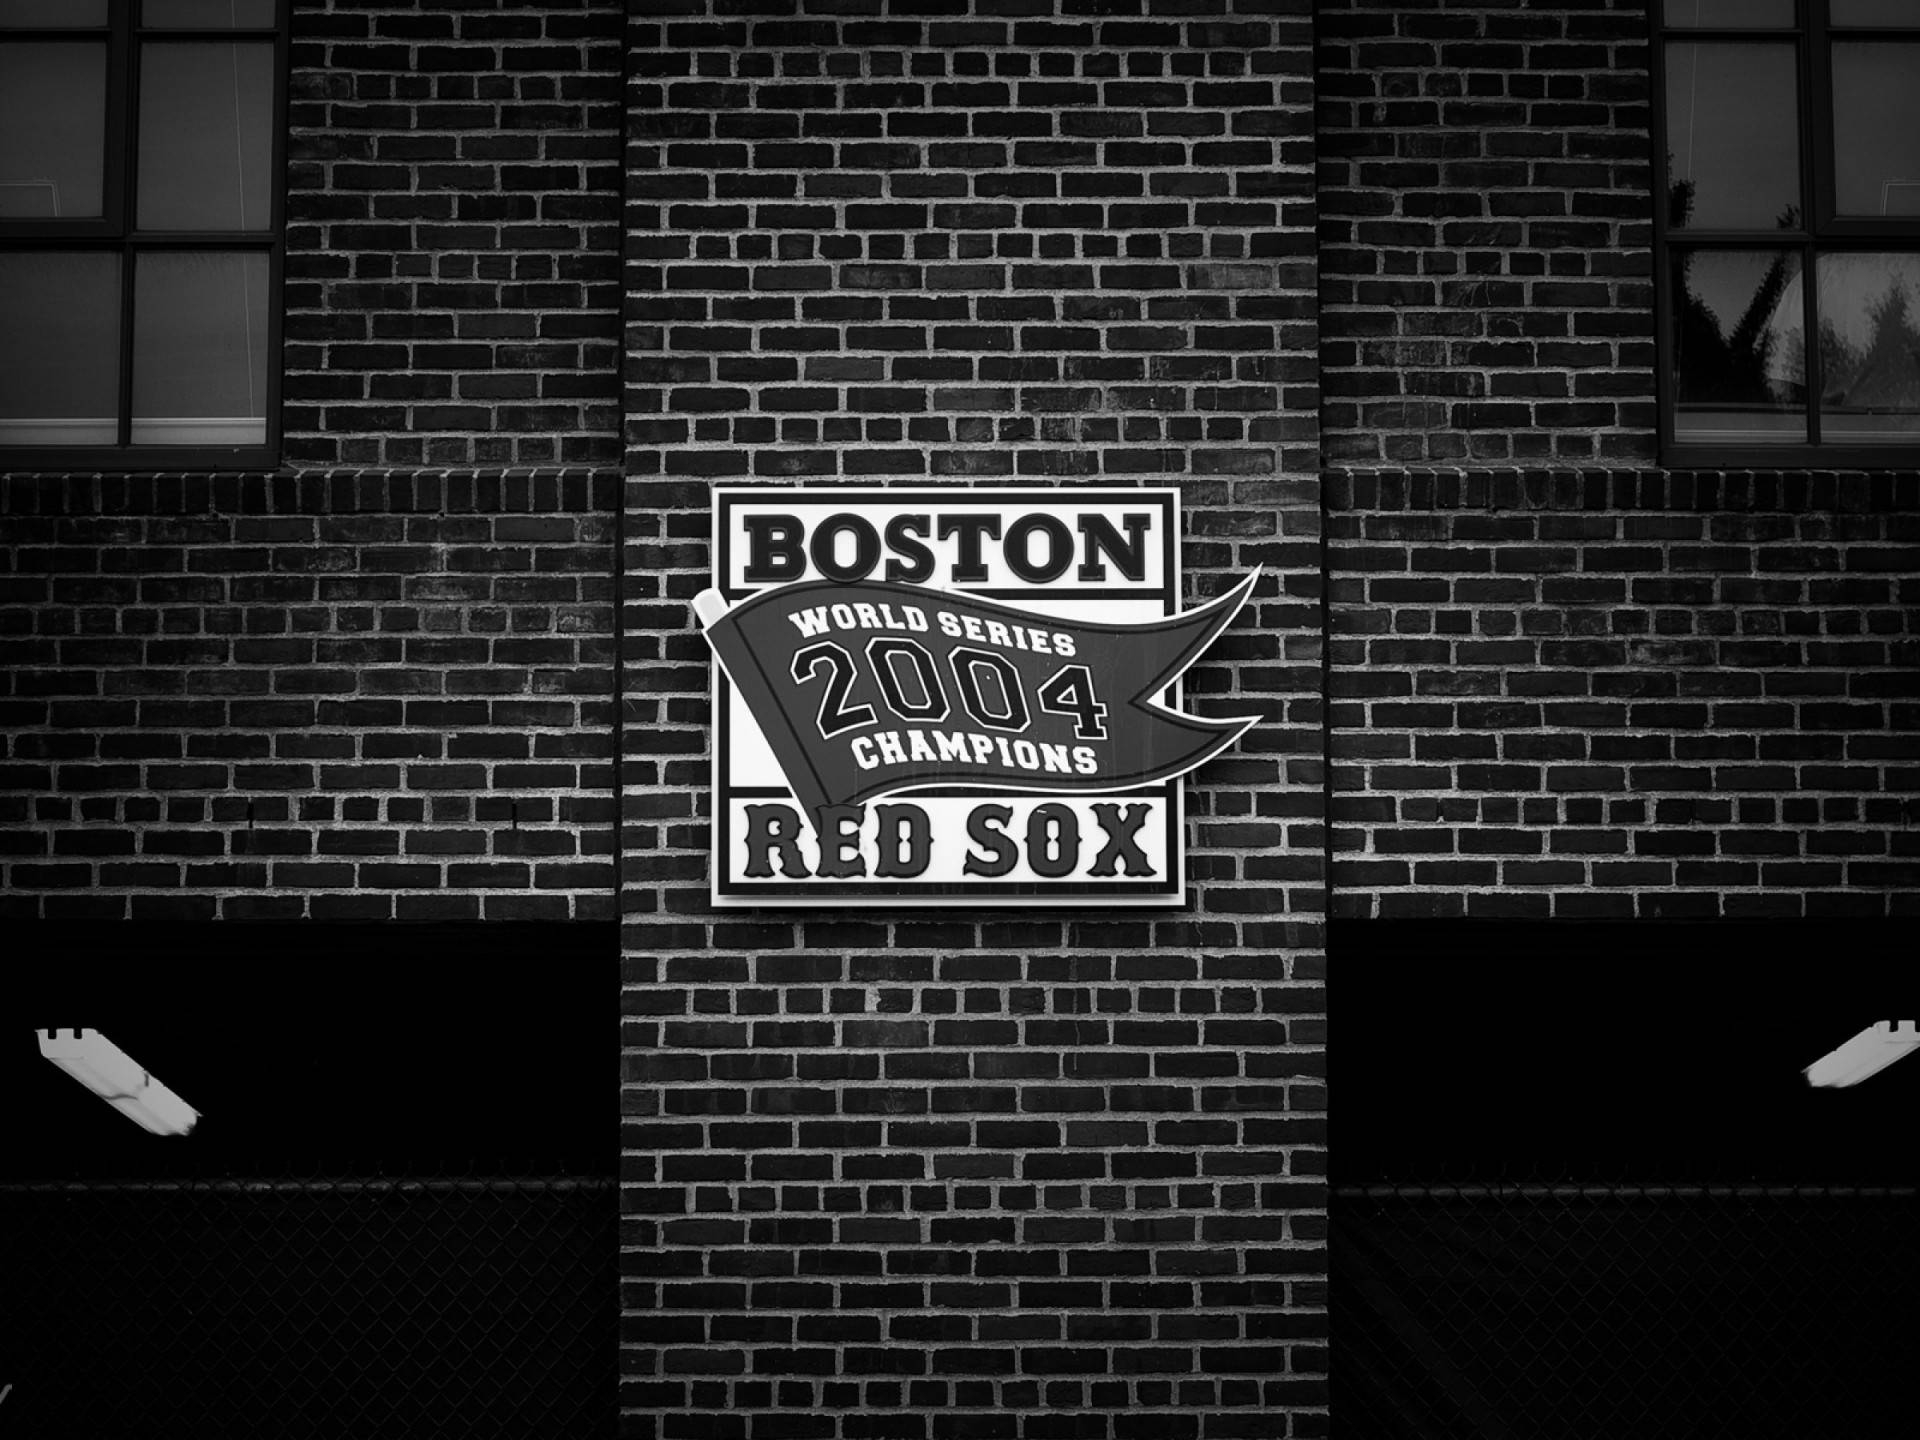 Boston Red Sox Ipad Wallpaper, Size: 1920X1440 #559 | Amazingpict Pertaining To 2017 Boston Red Sox Wall Art (View 3 of 25)